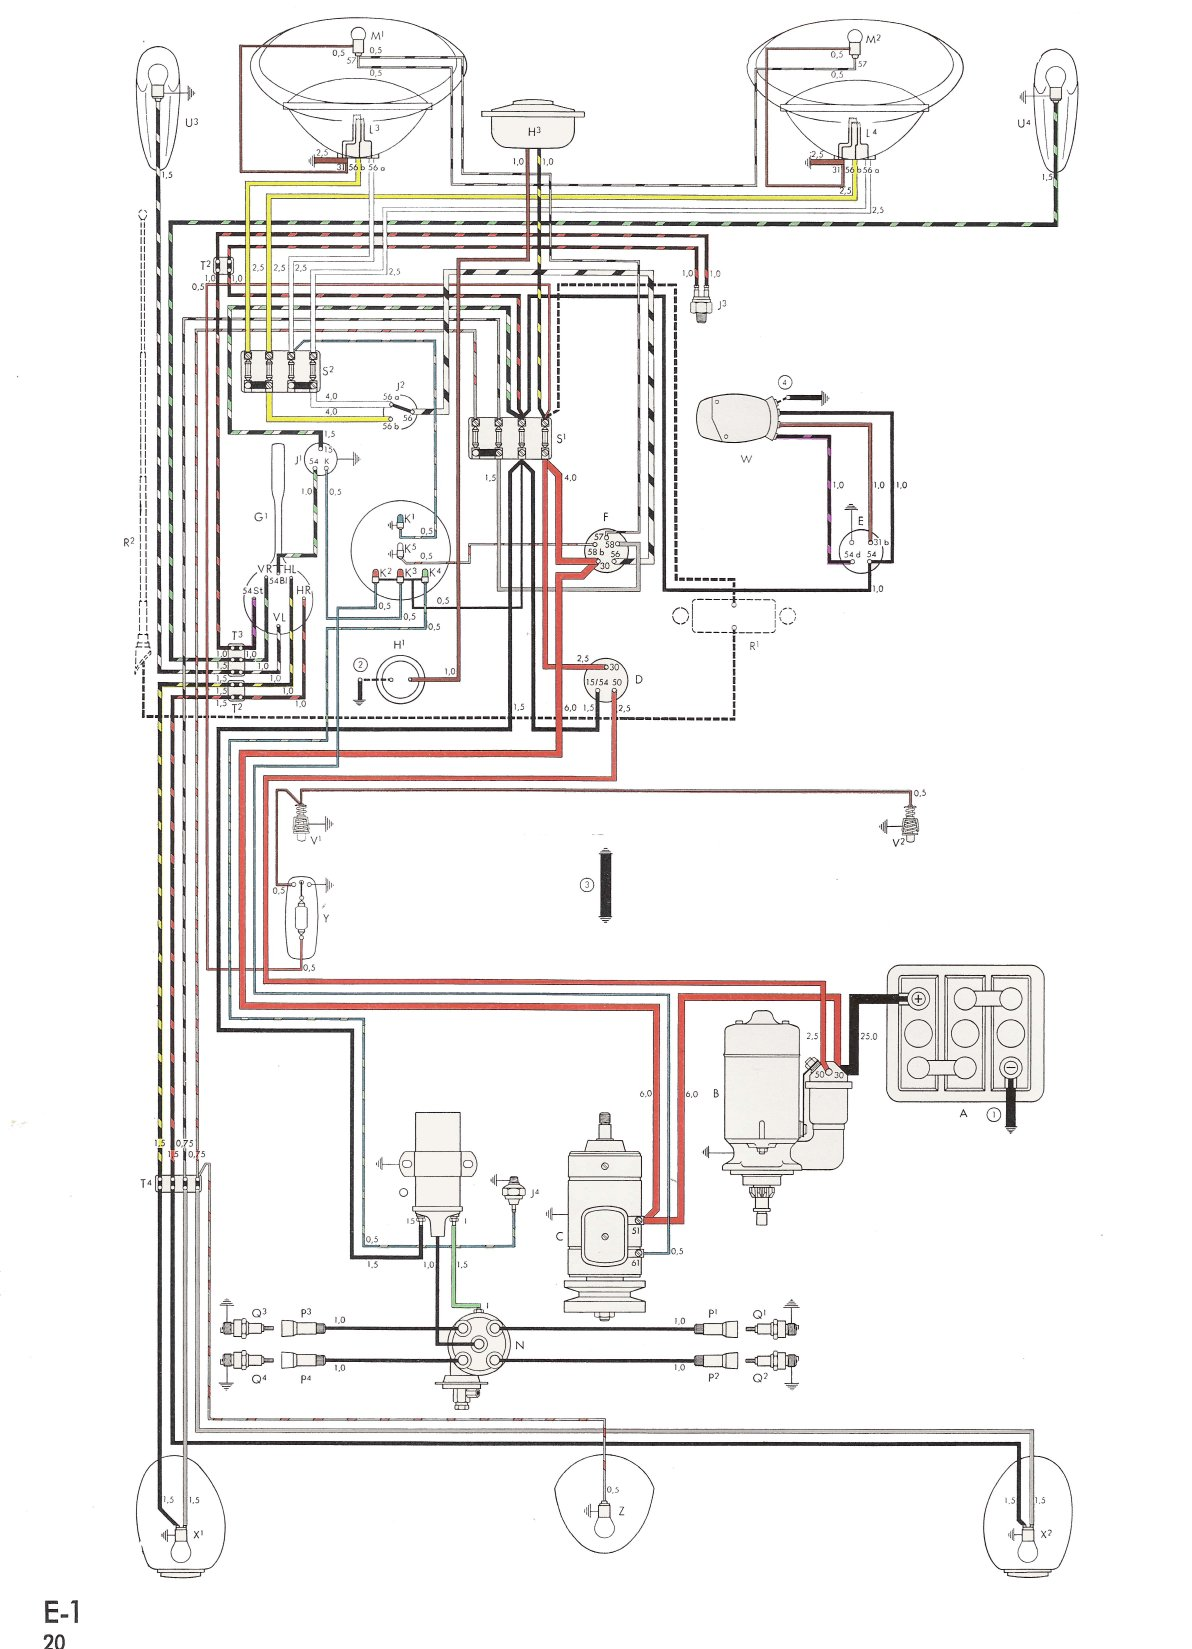 alternator wiring diagram 1974 vw bus. diagram. wiring ... 1974 vw bus wiring diagram